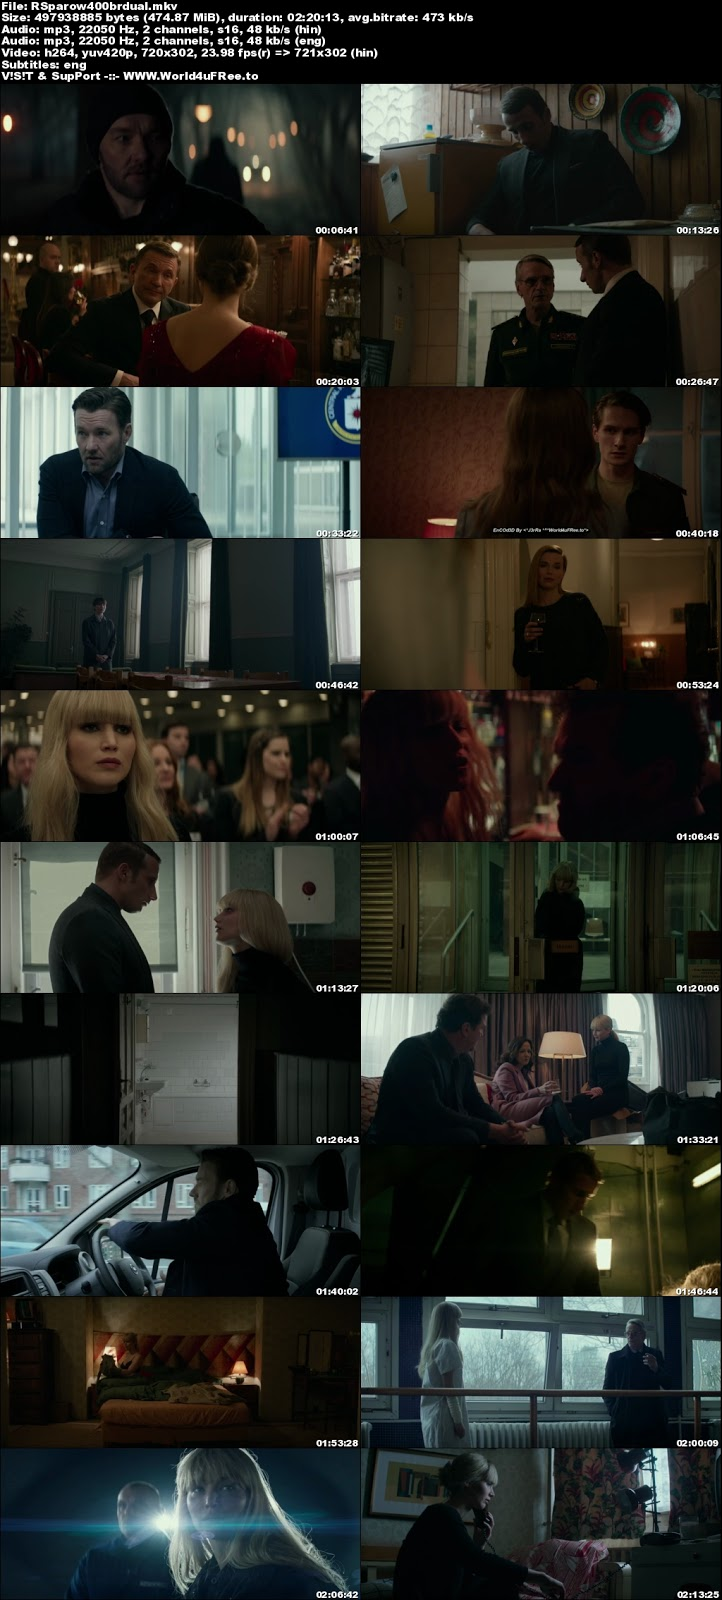 Red Sparrow 2018 Dual Audio BRRip 480p 450mb x264 world4ufree.to hollywood movie Red Sparrow 2018 hindi dubbed dual audio 480p brrip bluray compressed small size 300mb free download or watch online at world4ufree.to